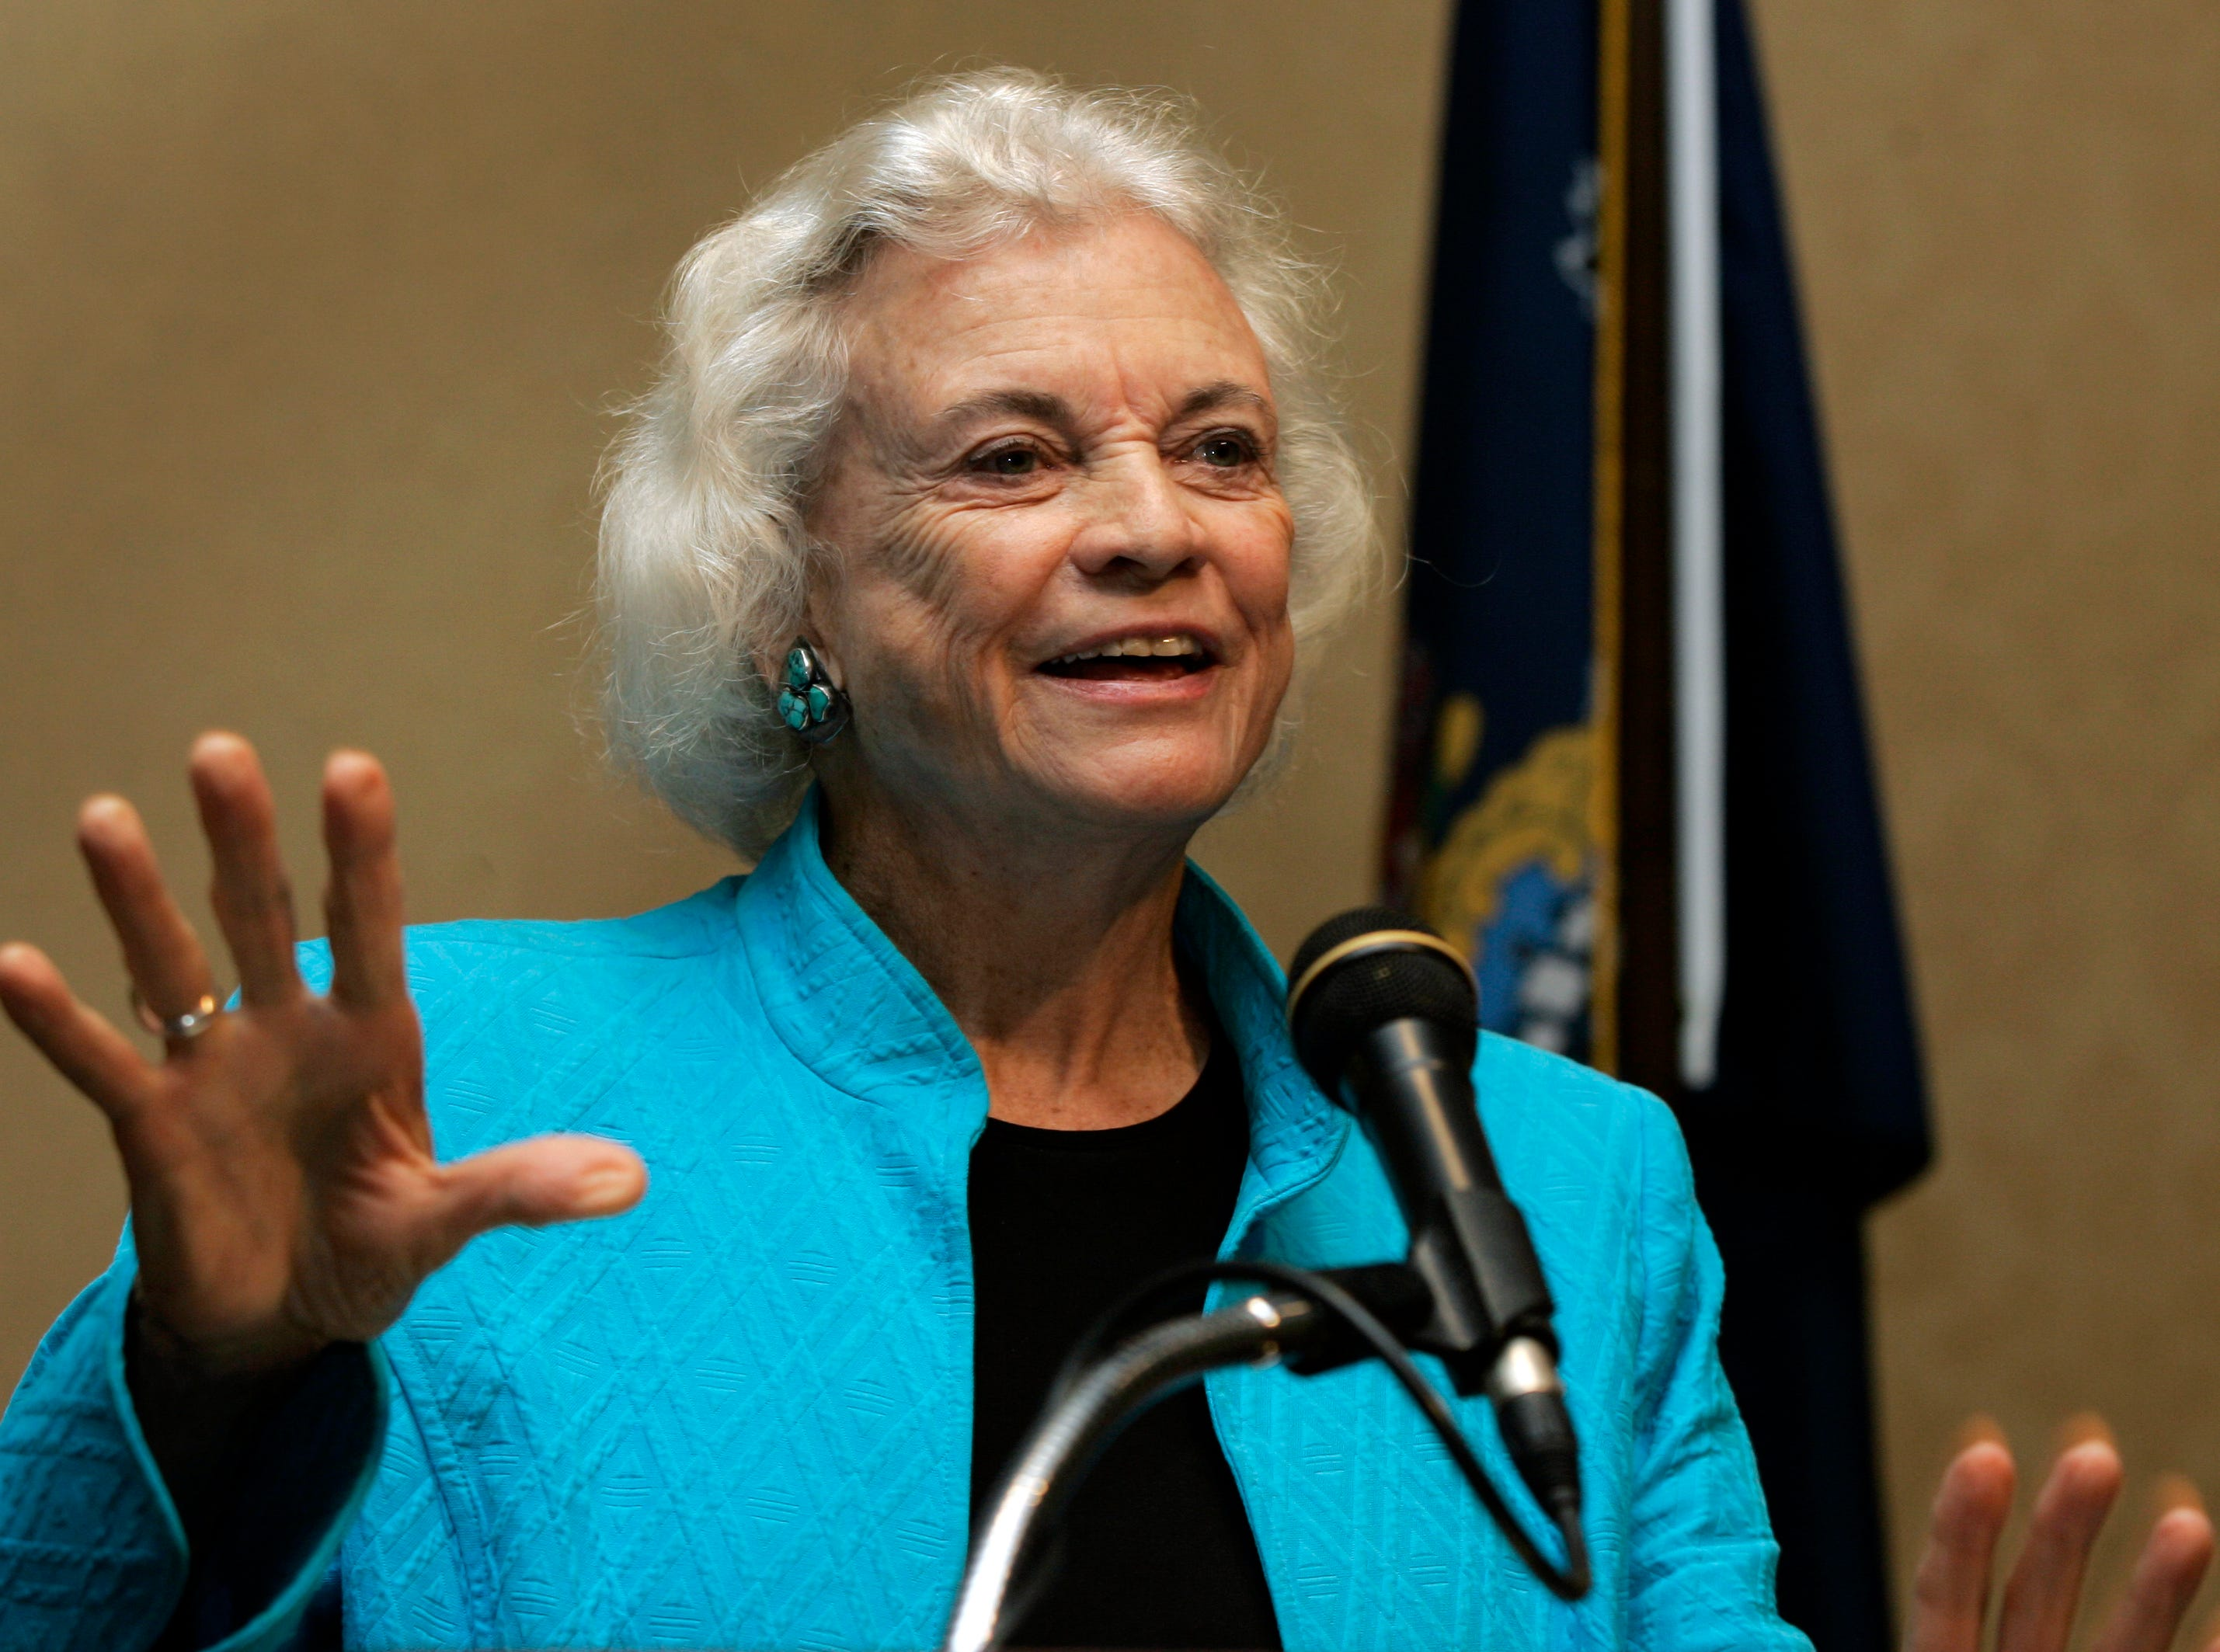 Retired U.S. Supreme Court Justice Sandra Day O'Connor addresses a meeting of Pennsylvania judges and lawyers in Harrisburg, Pa., Wednesday, Sept., 19, 2007.